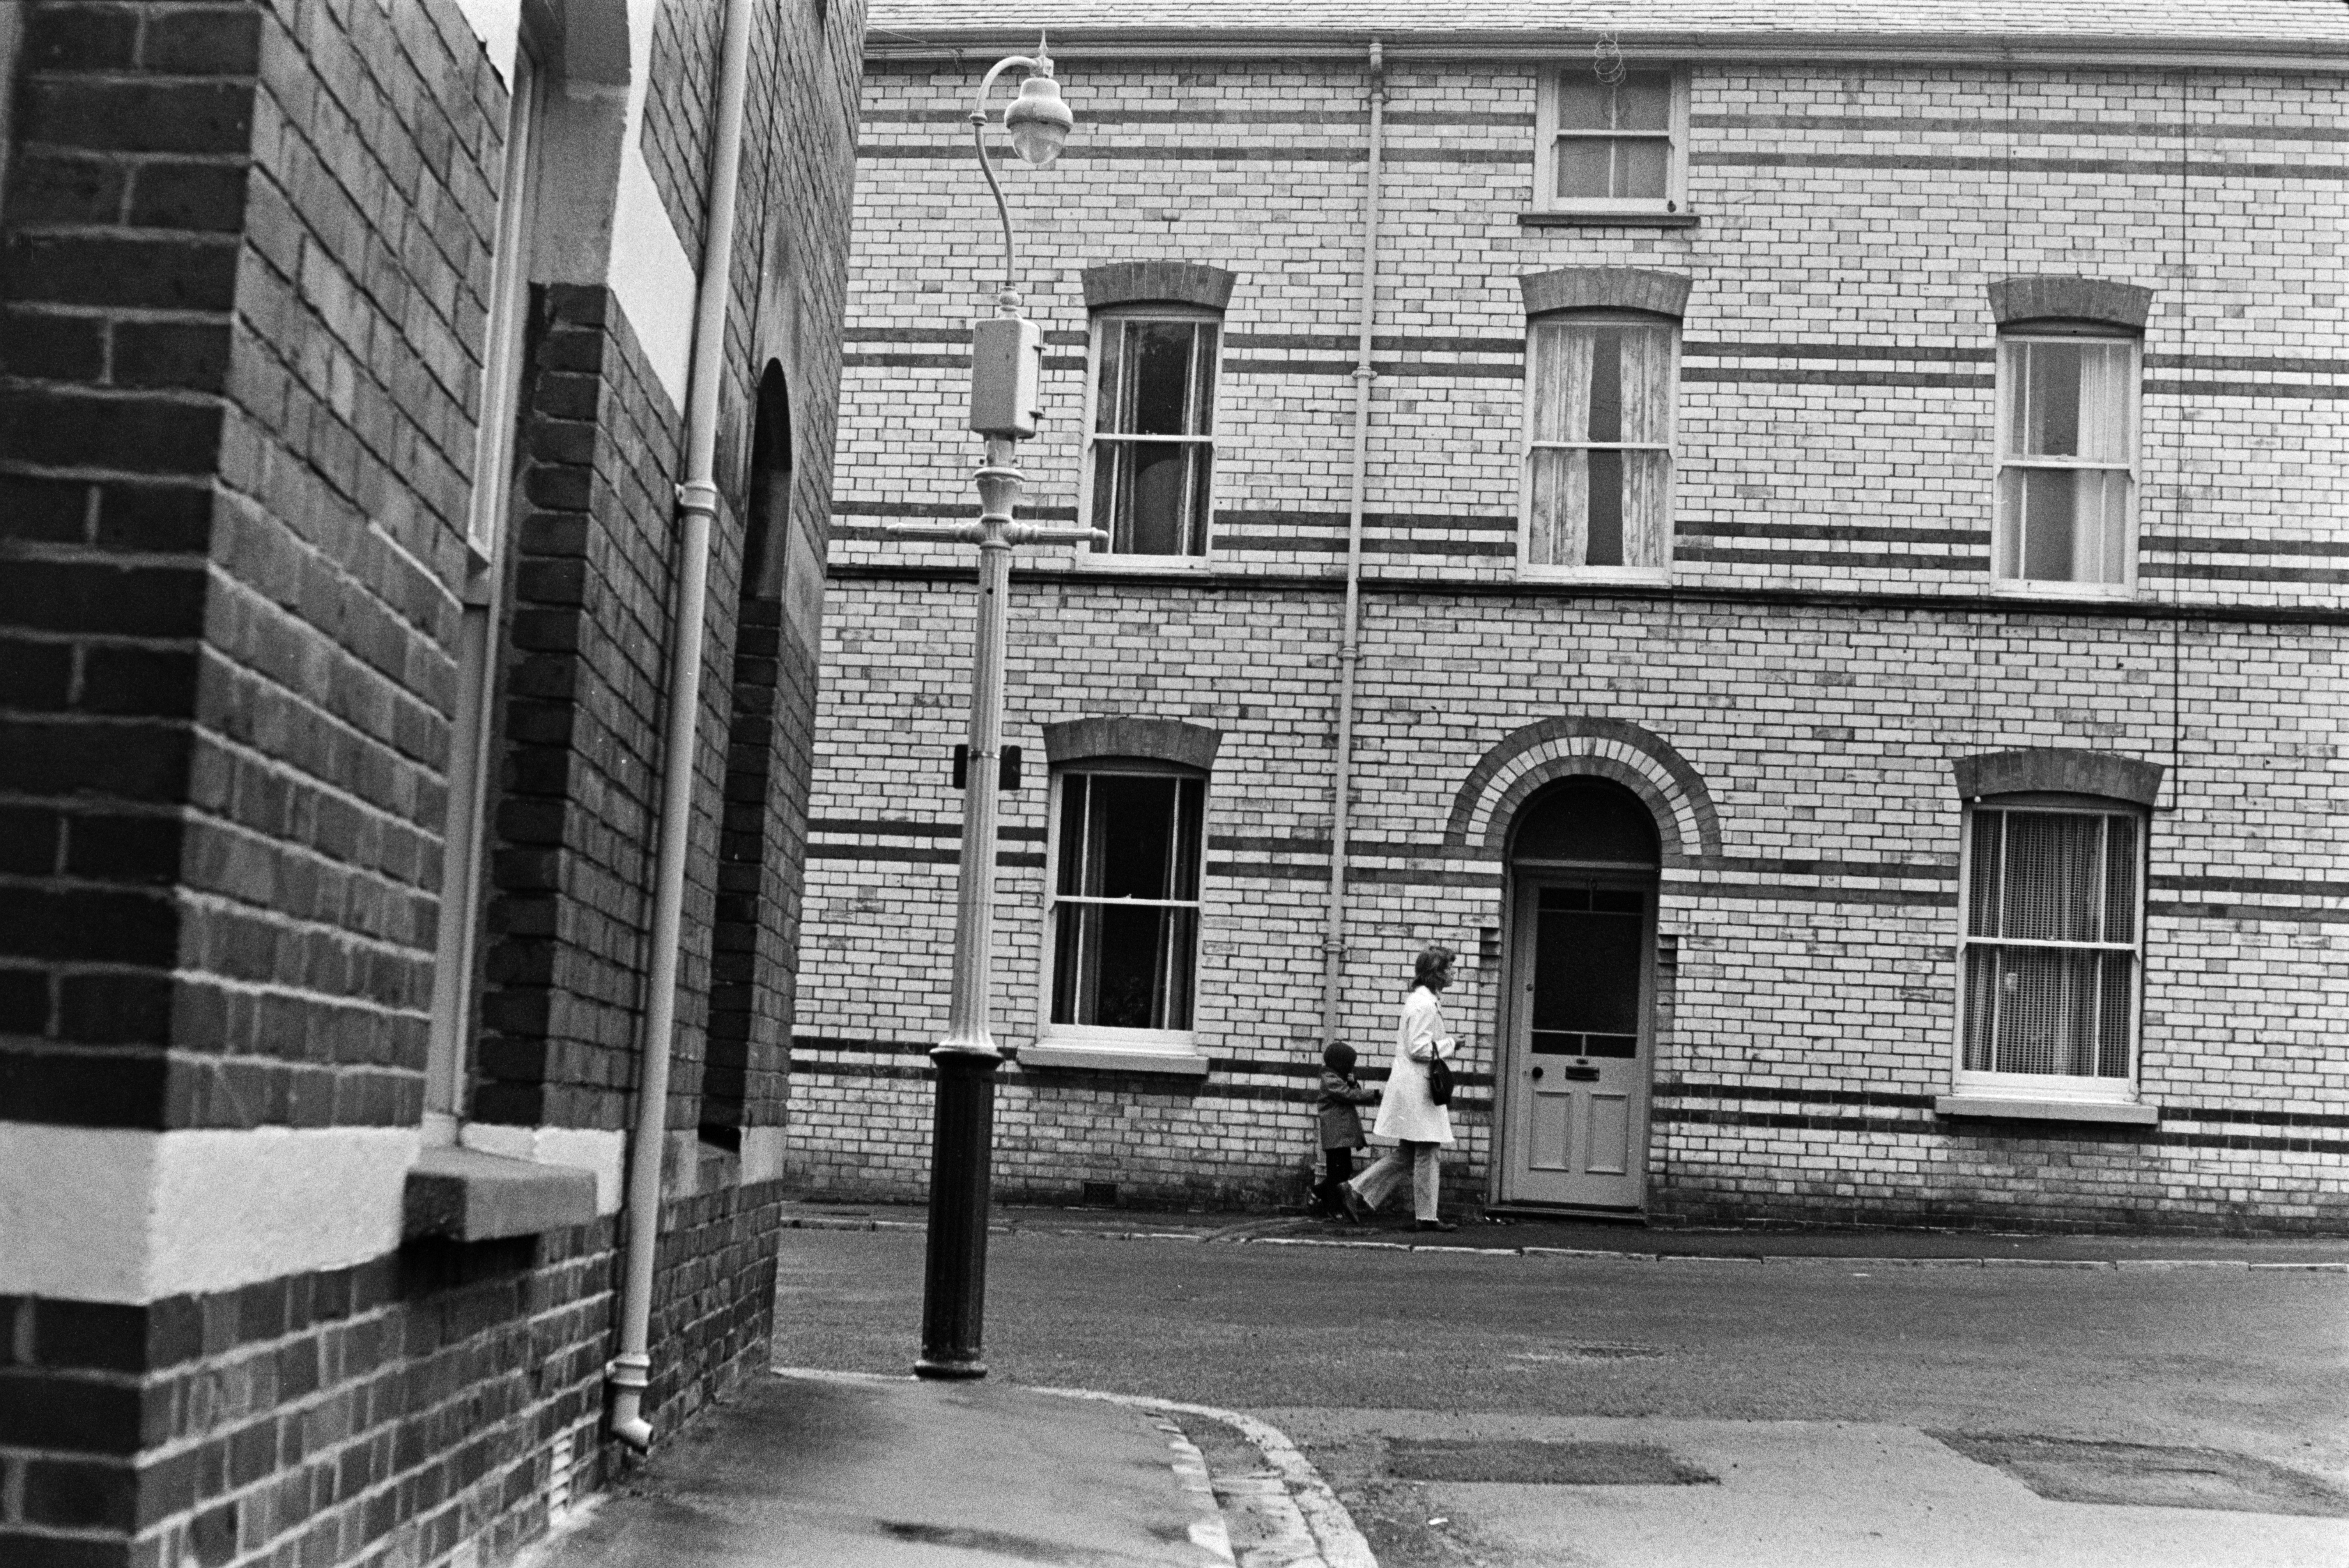 A woman and child walking down a street with terraced brick houses in Barnstaple. The door and window lintels are arched and a lamppost is on the street corner.